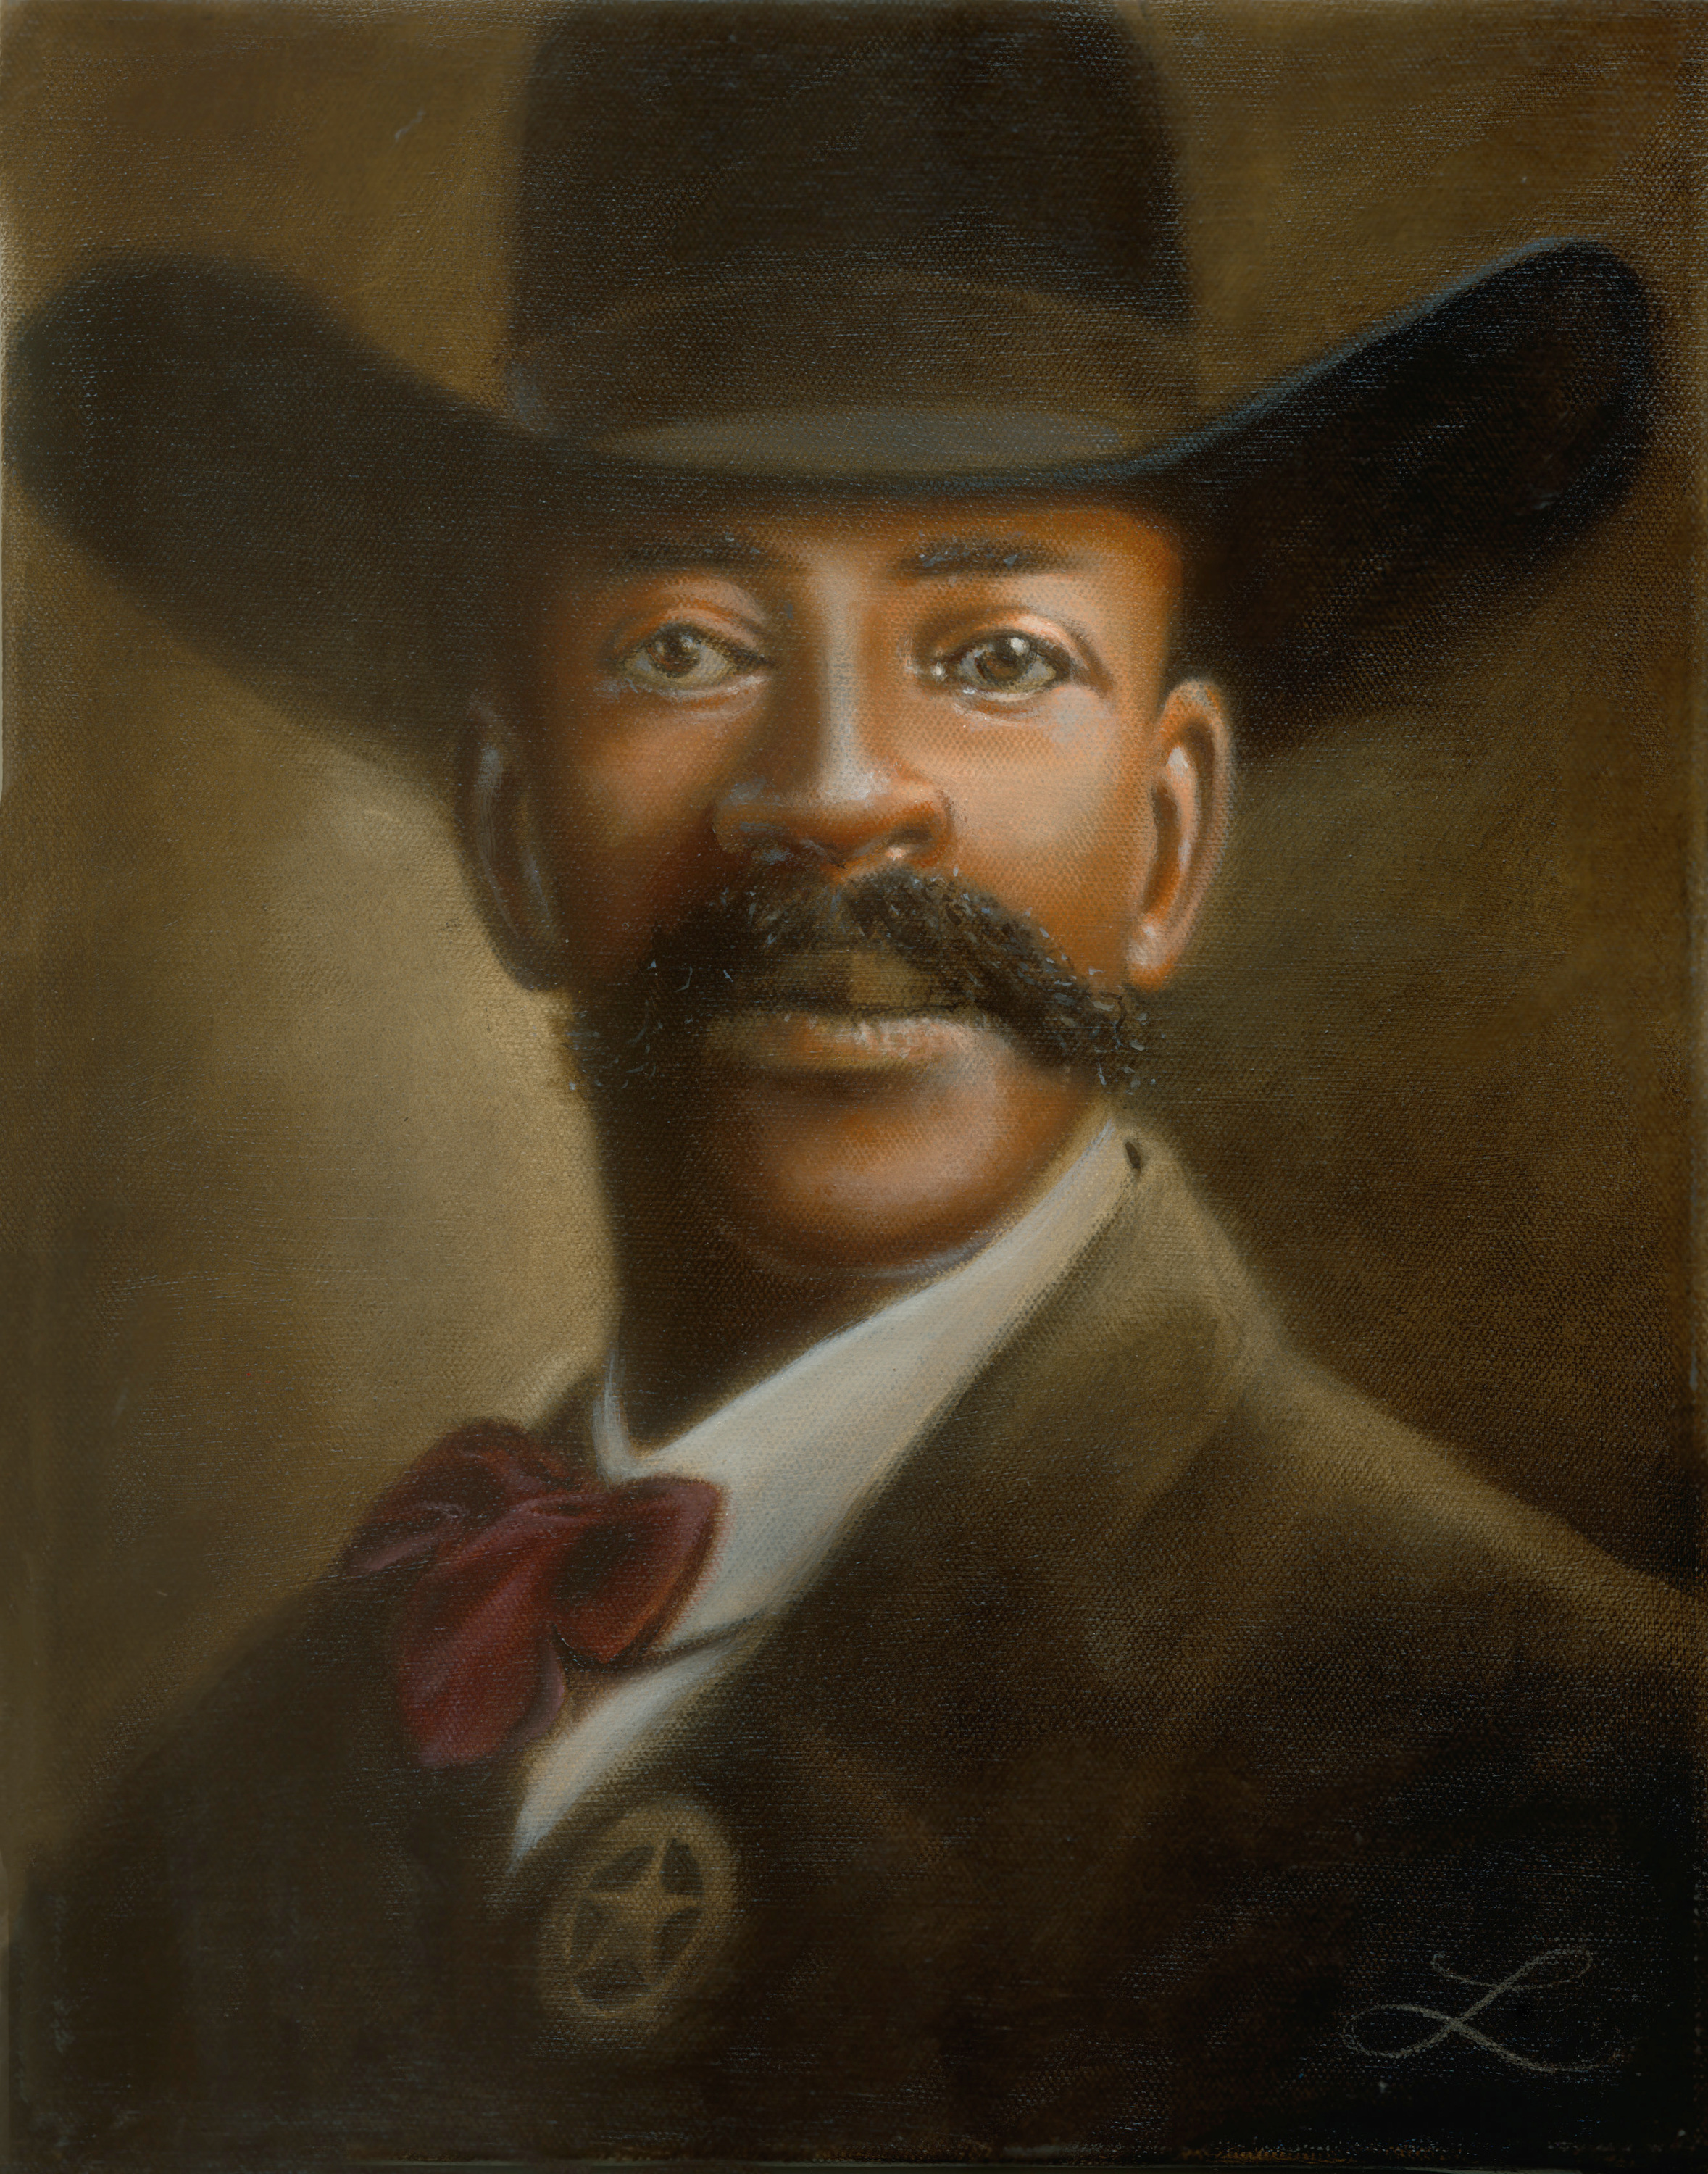 Bass reeves huge auixvt